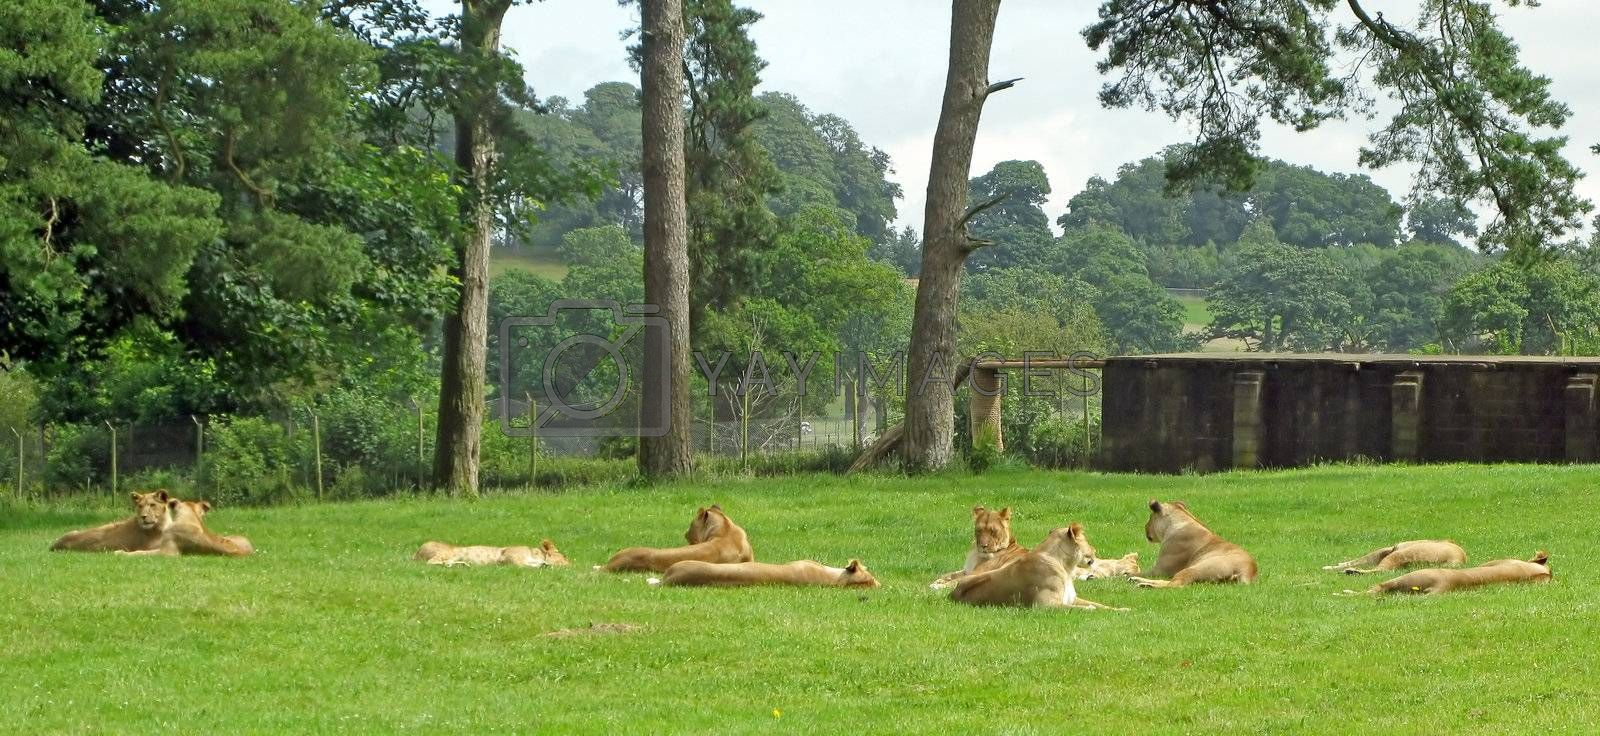 Lionesses laying in the grass in a safari park